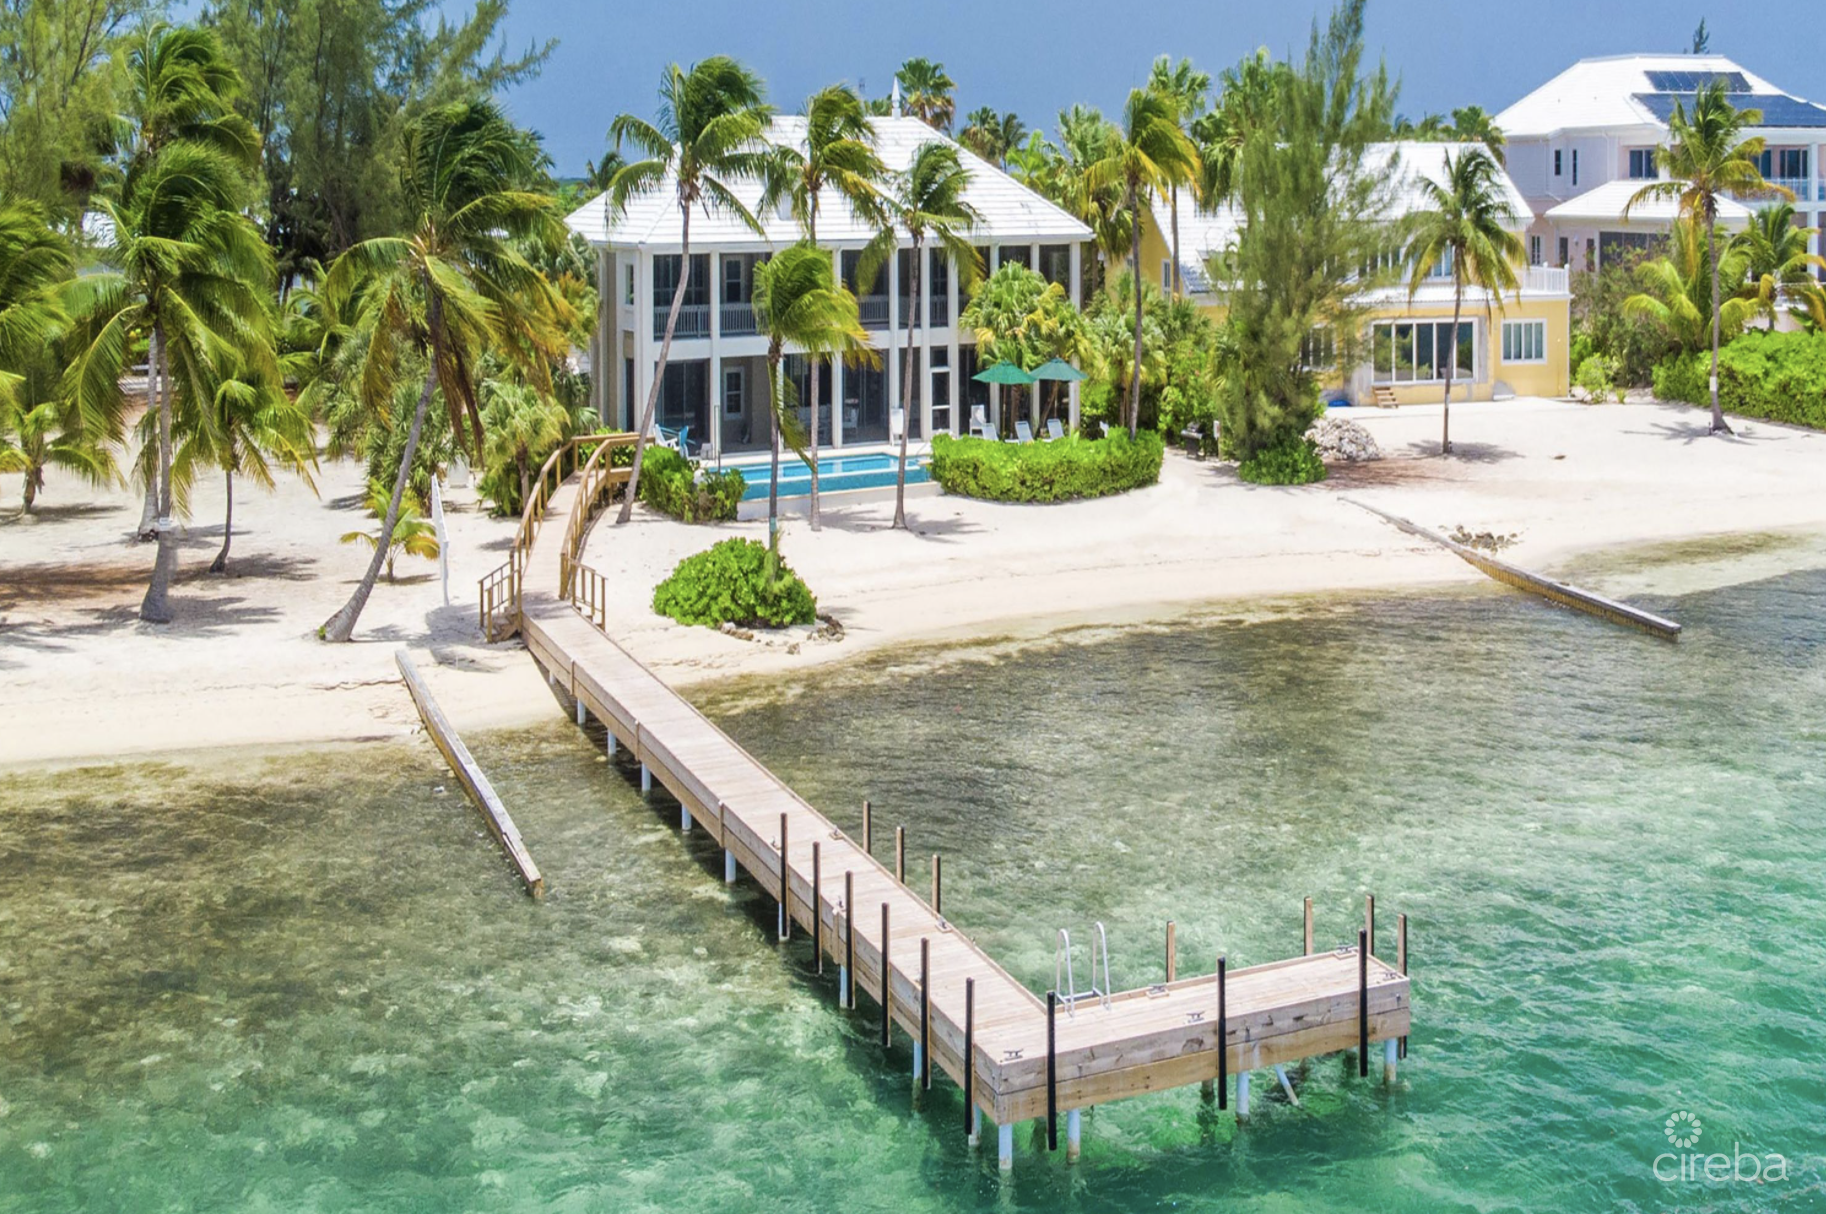 ABITA KAI BEACH FRONT RESIDENCE W/GUEST HOUSE, BOAT GARAGE AND DOCK!